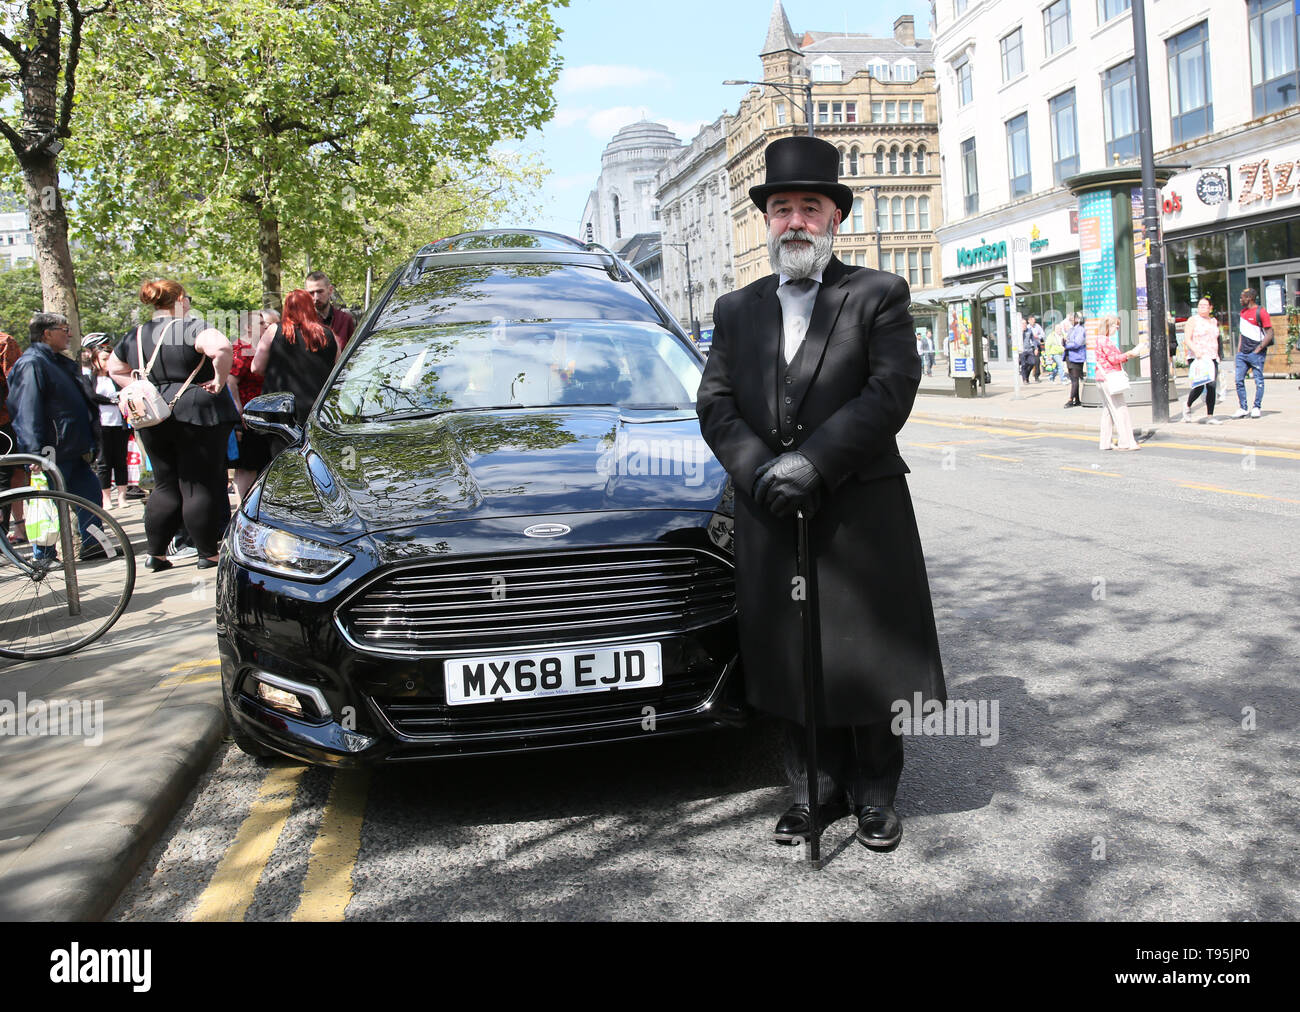 Piccadilly Gardens, Manchester, UK, 16th May, 2019. The funeral of Manchester 'Piccadilly Rat' Ray Boddington is due to take place In Salford.  The Hearse carrying his coffin parked in the city center giving friends the opportunity to pay their respects.  The popular street entertainer died in hospital after been hit by a tram. Piccadilly Gardens, Manchester.  Credit: Barbara Cook/Alamy Live News - Stock Image